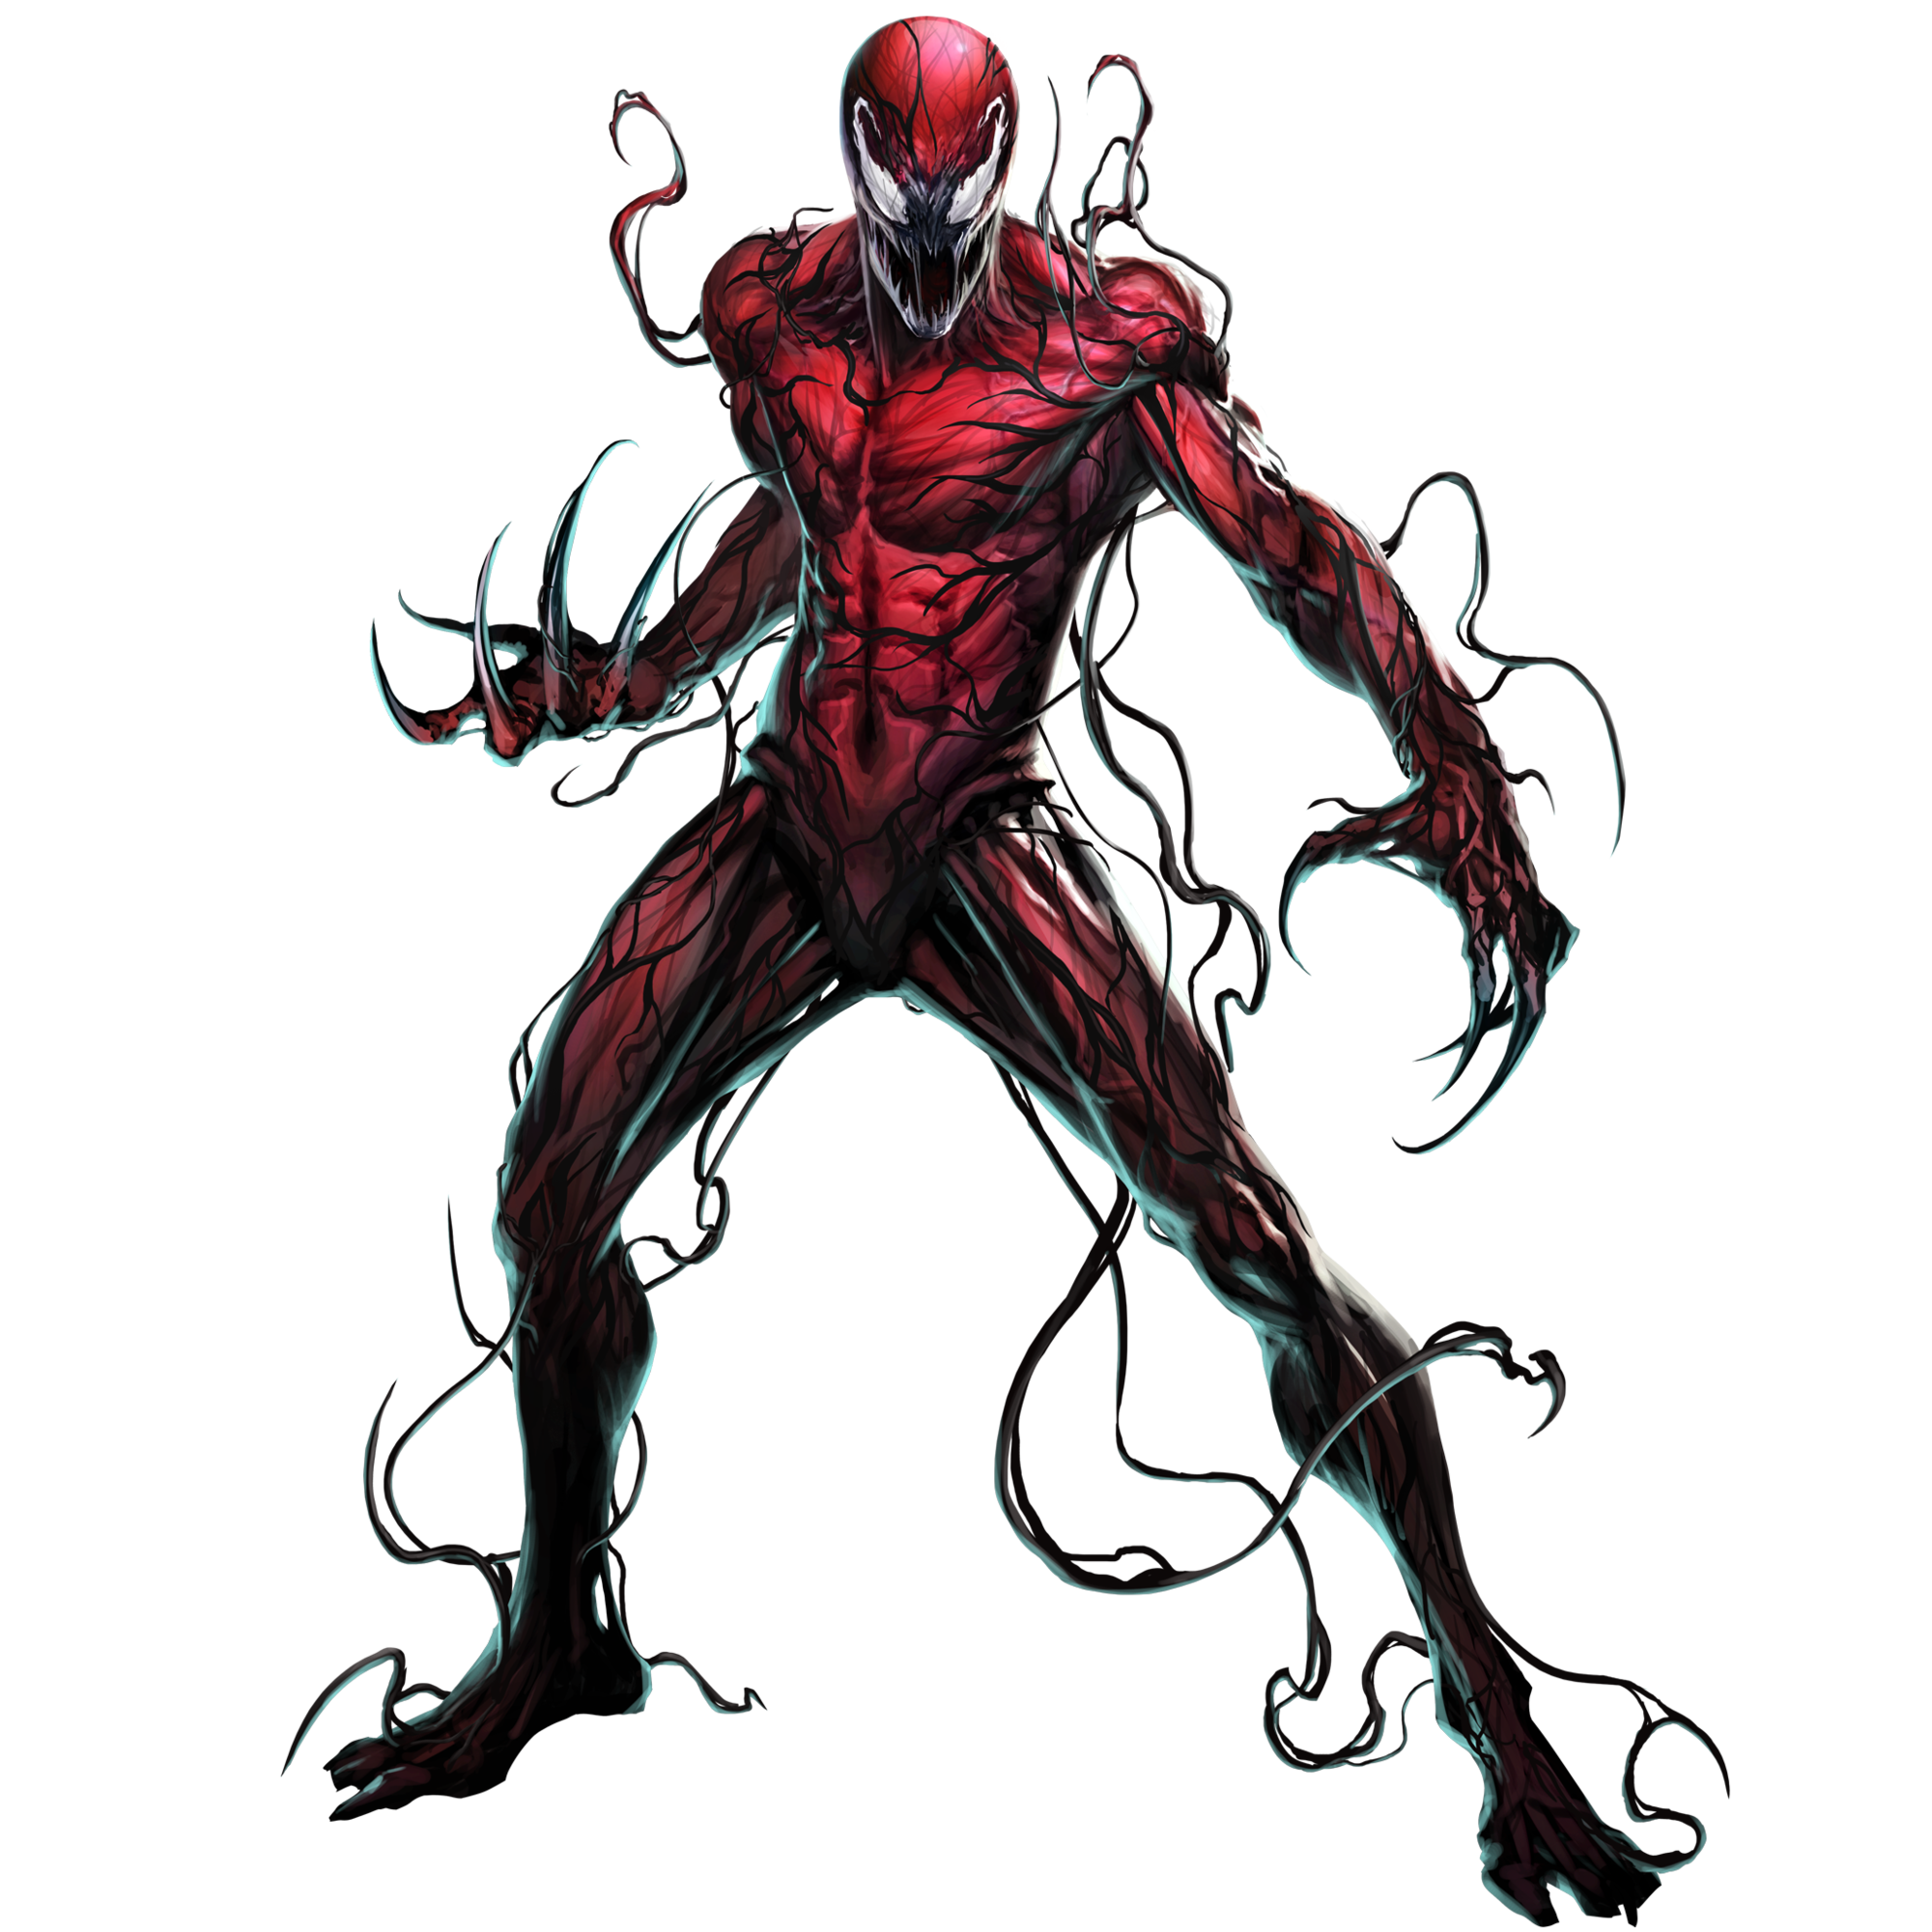 2000x2000 Spiderman Venom Png, Picture